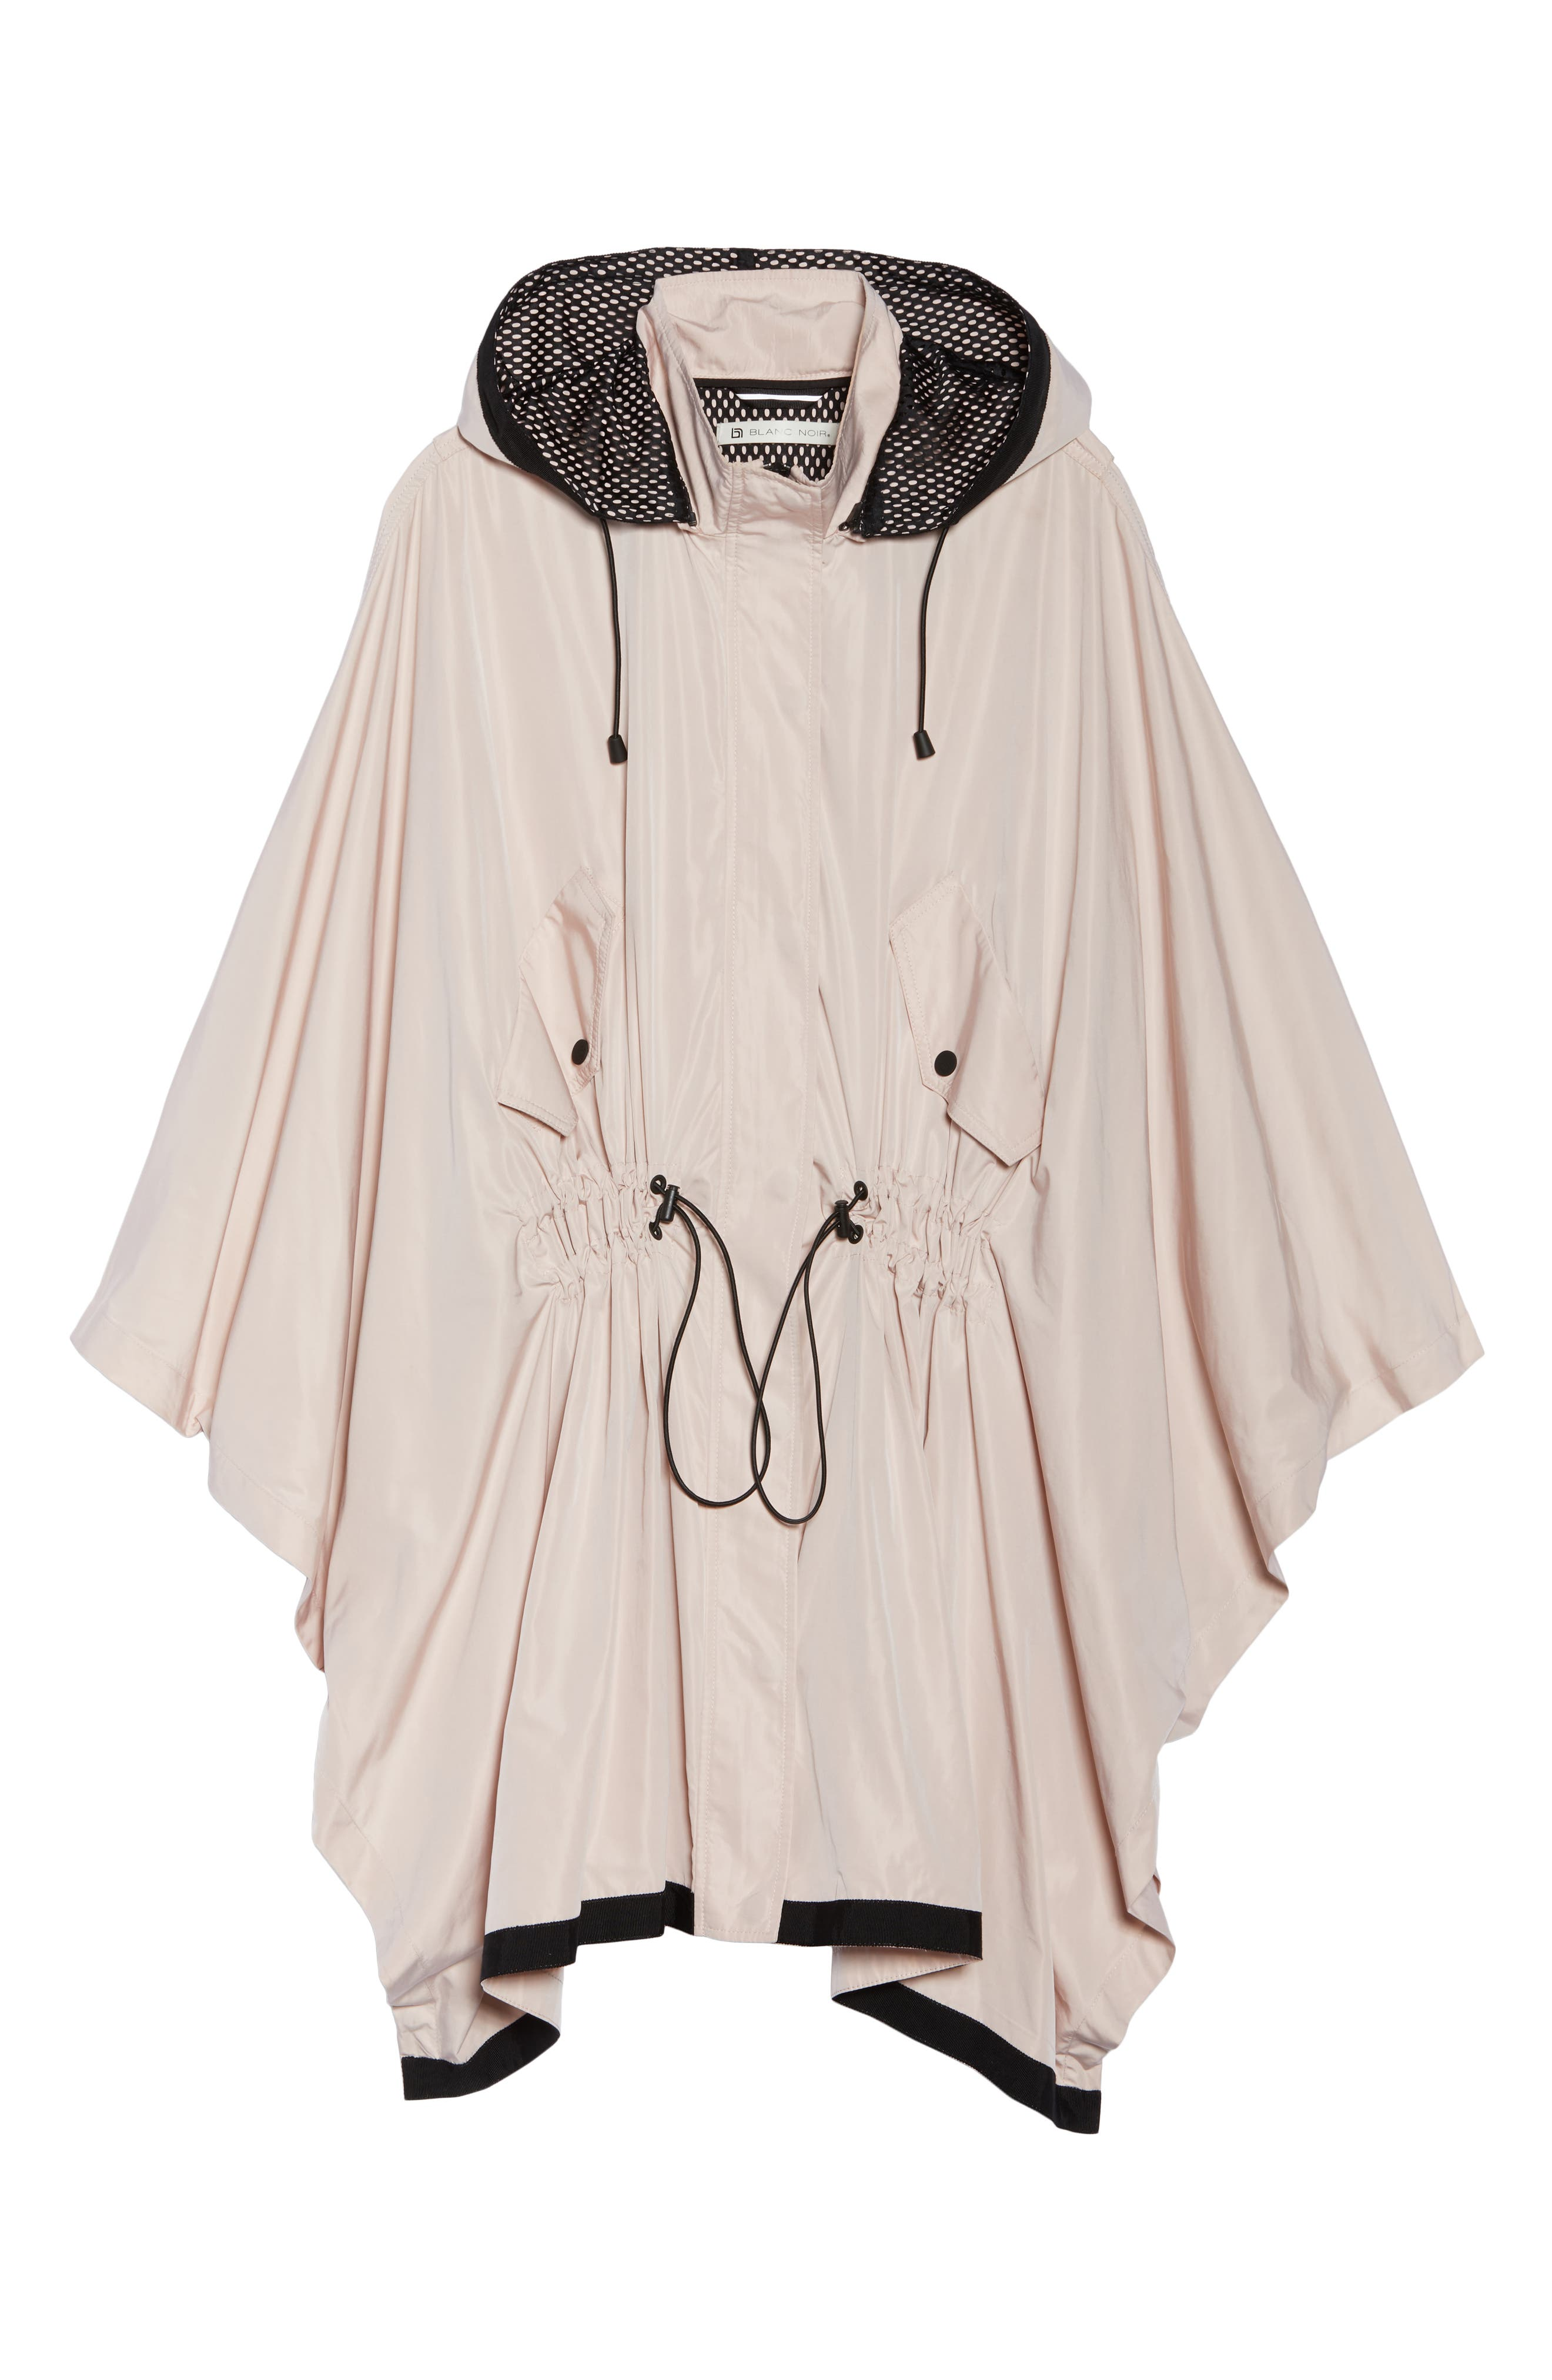 Stormie Poncho,                             Alternate thumbnail 7, color,                             Rose Grey/ Black